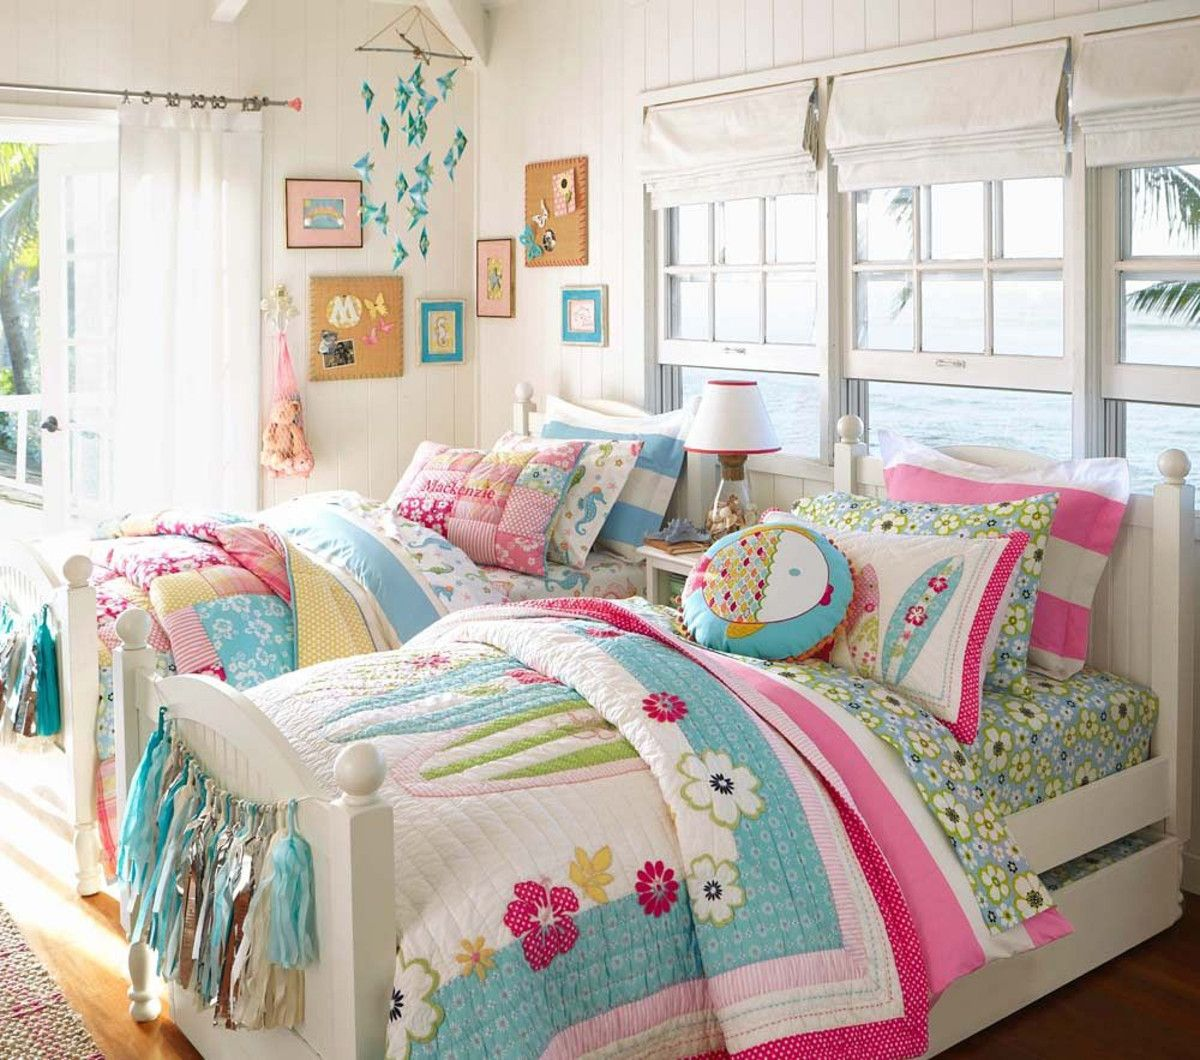 Mallory bedding from Pottery Barn Kids Girl Room Ideas